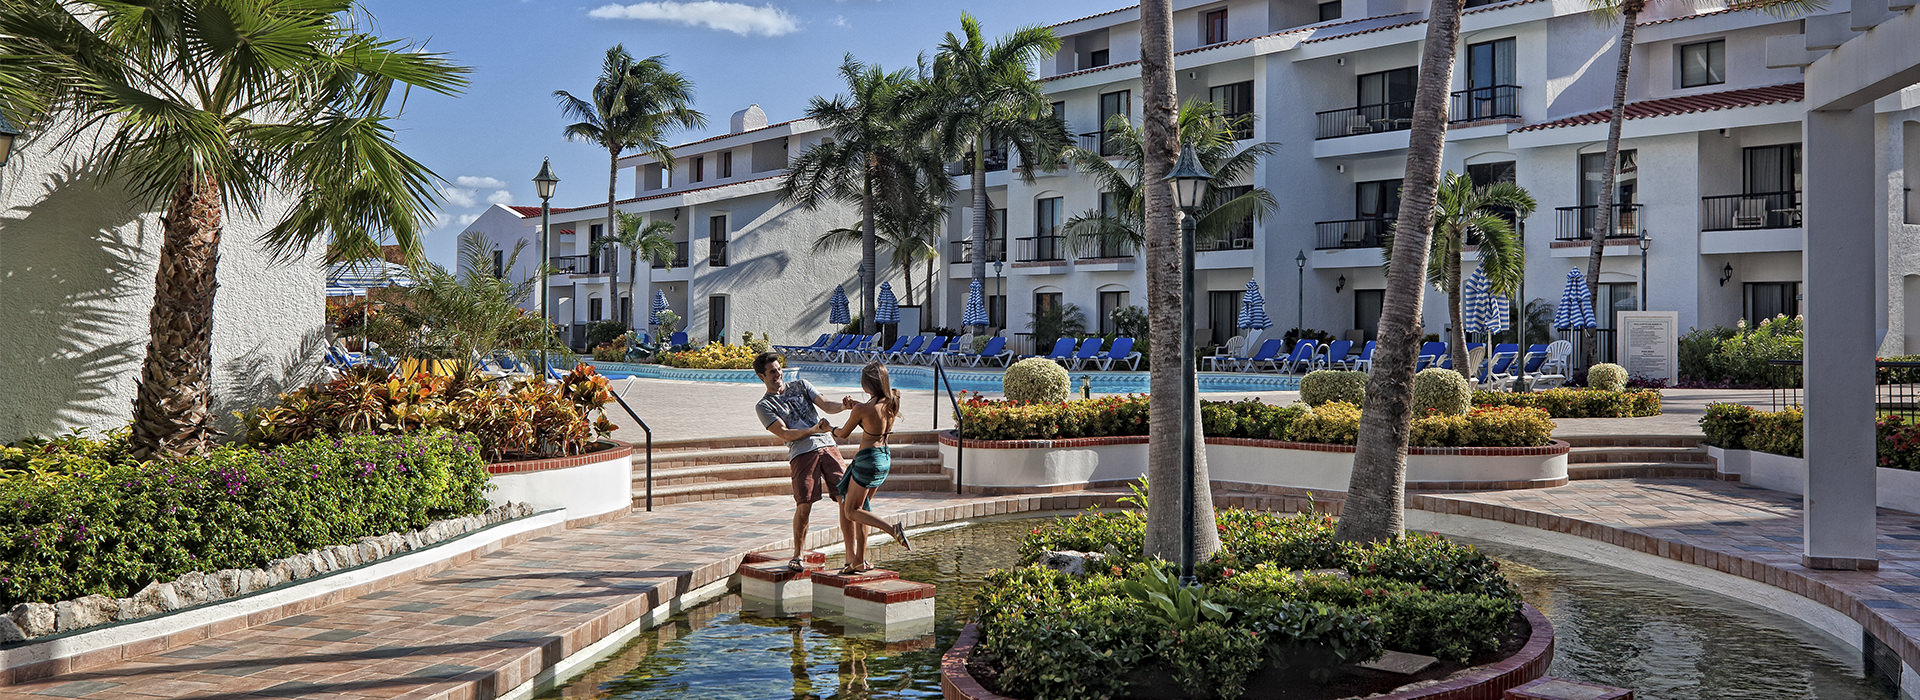 couple getaway to Cancun resort